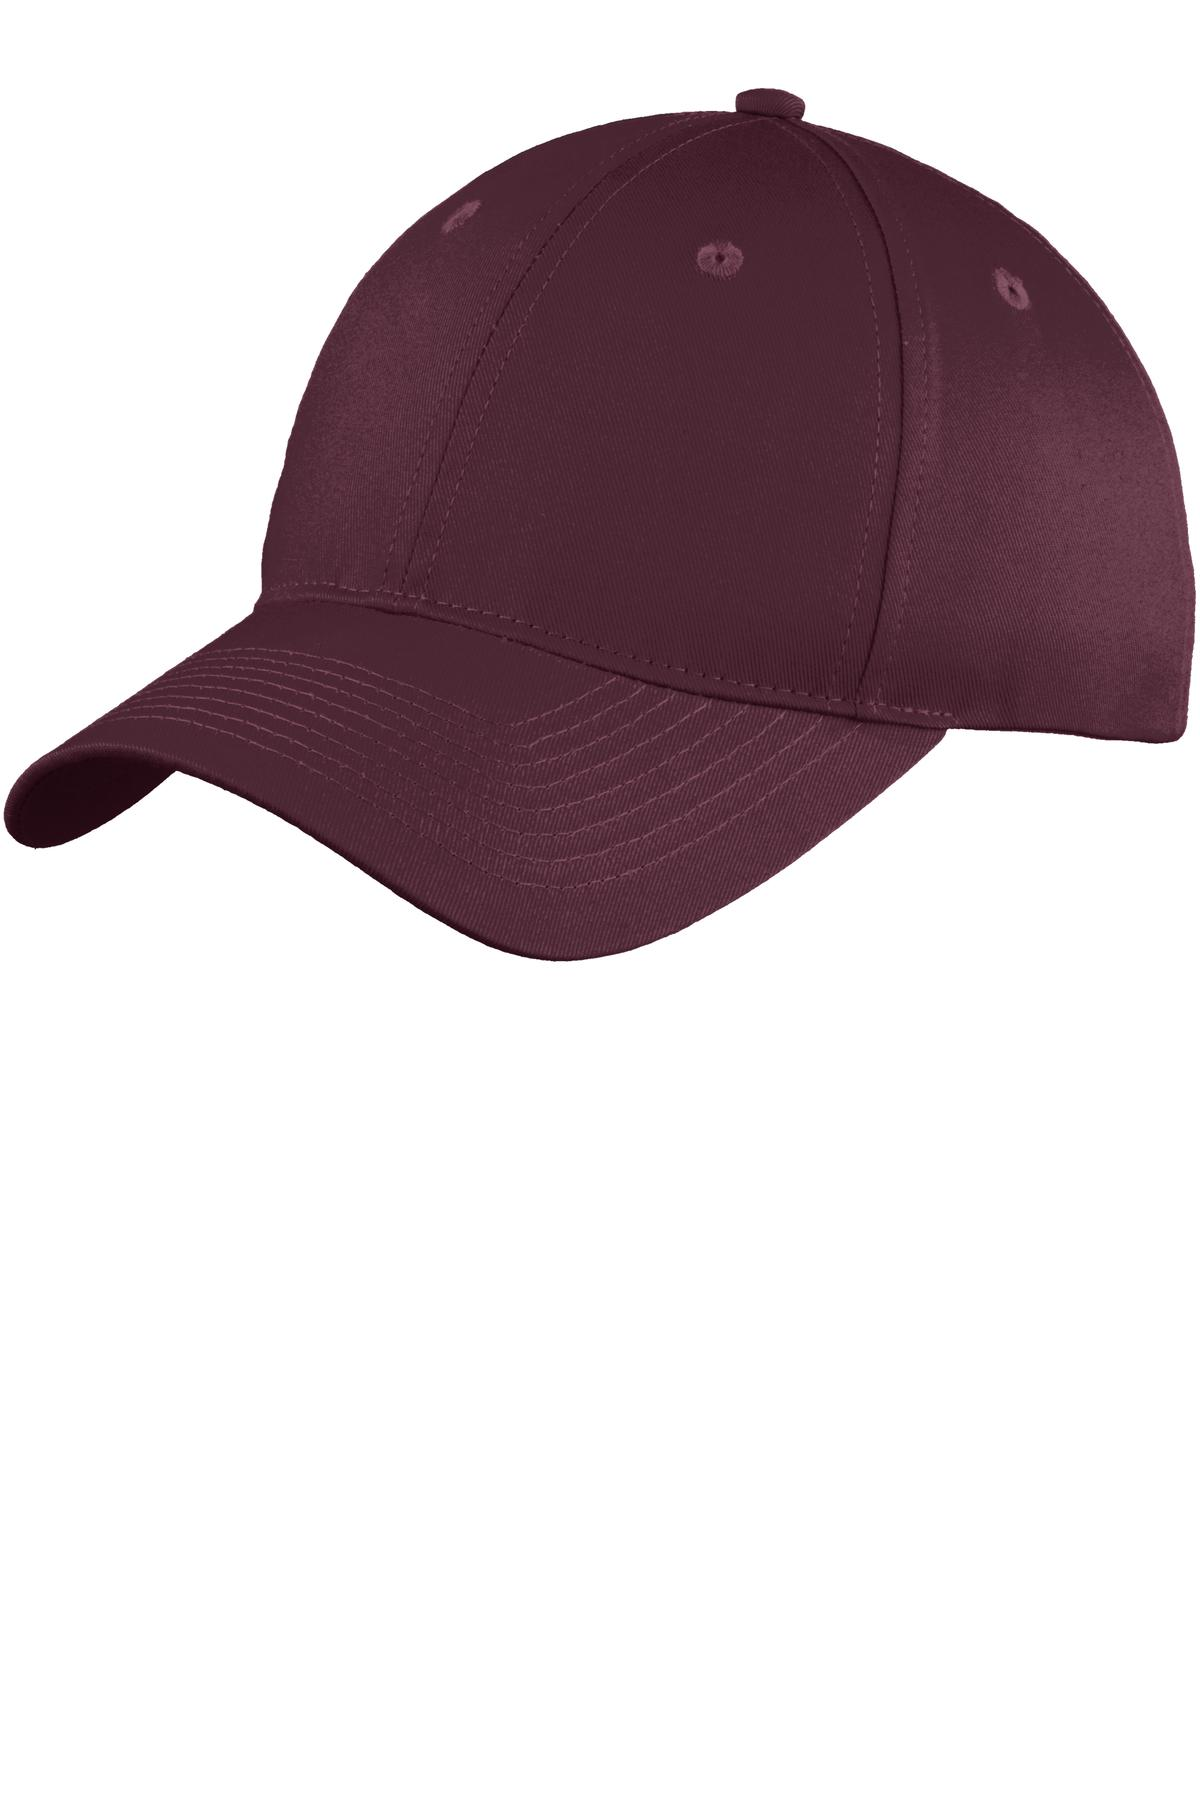 Port & Company ®  Six-Panel Unstructured Twill Cap. C914 - Maroon